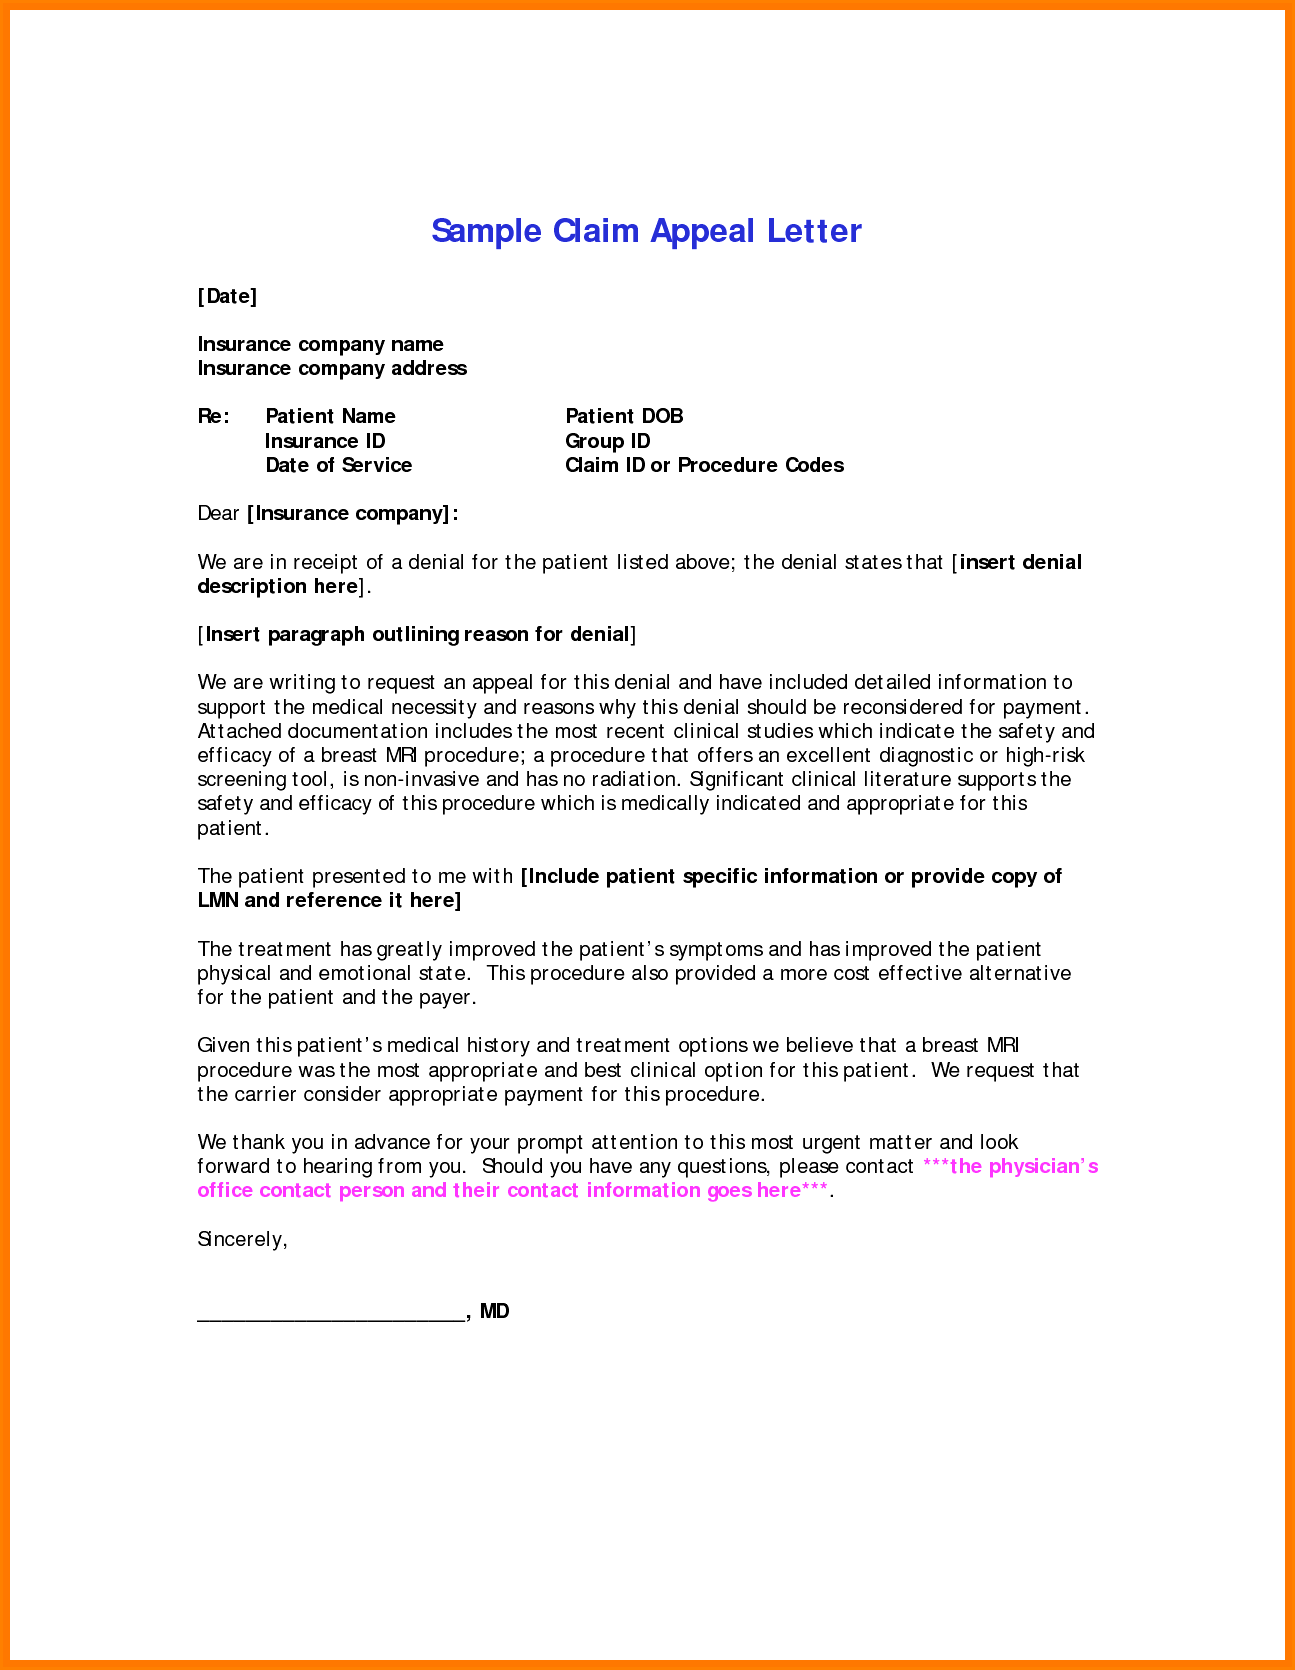 insurance appeal letter template health letters medical sample claim best free home design idea inspiration